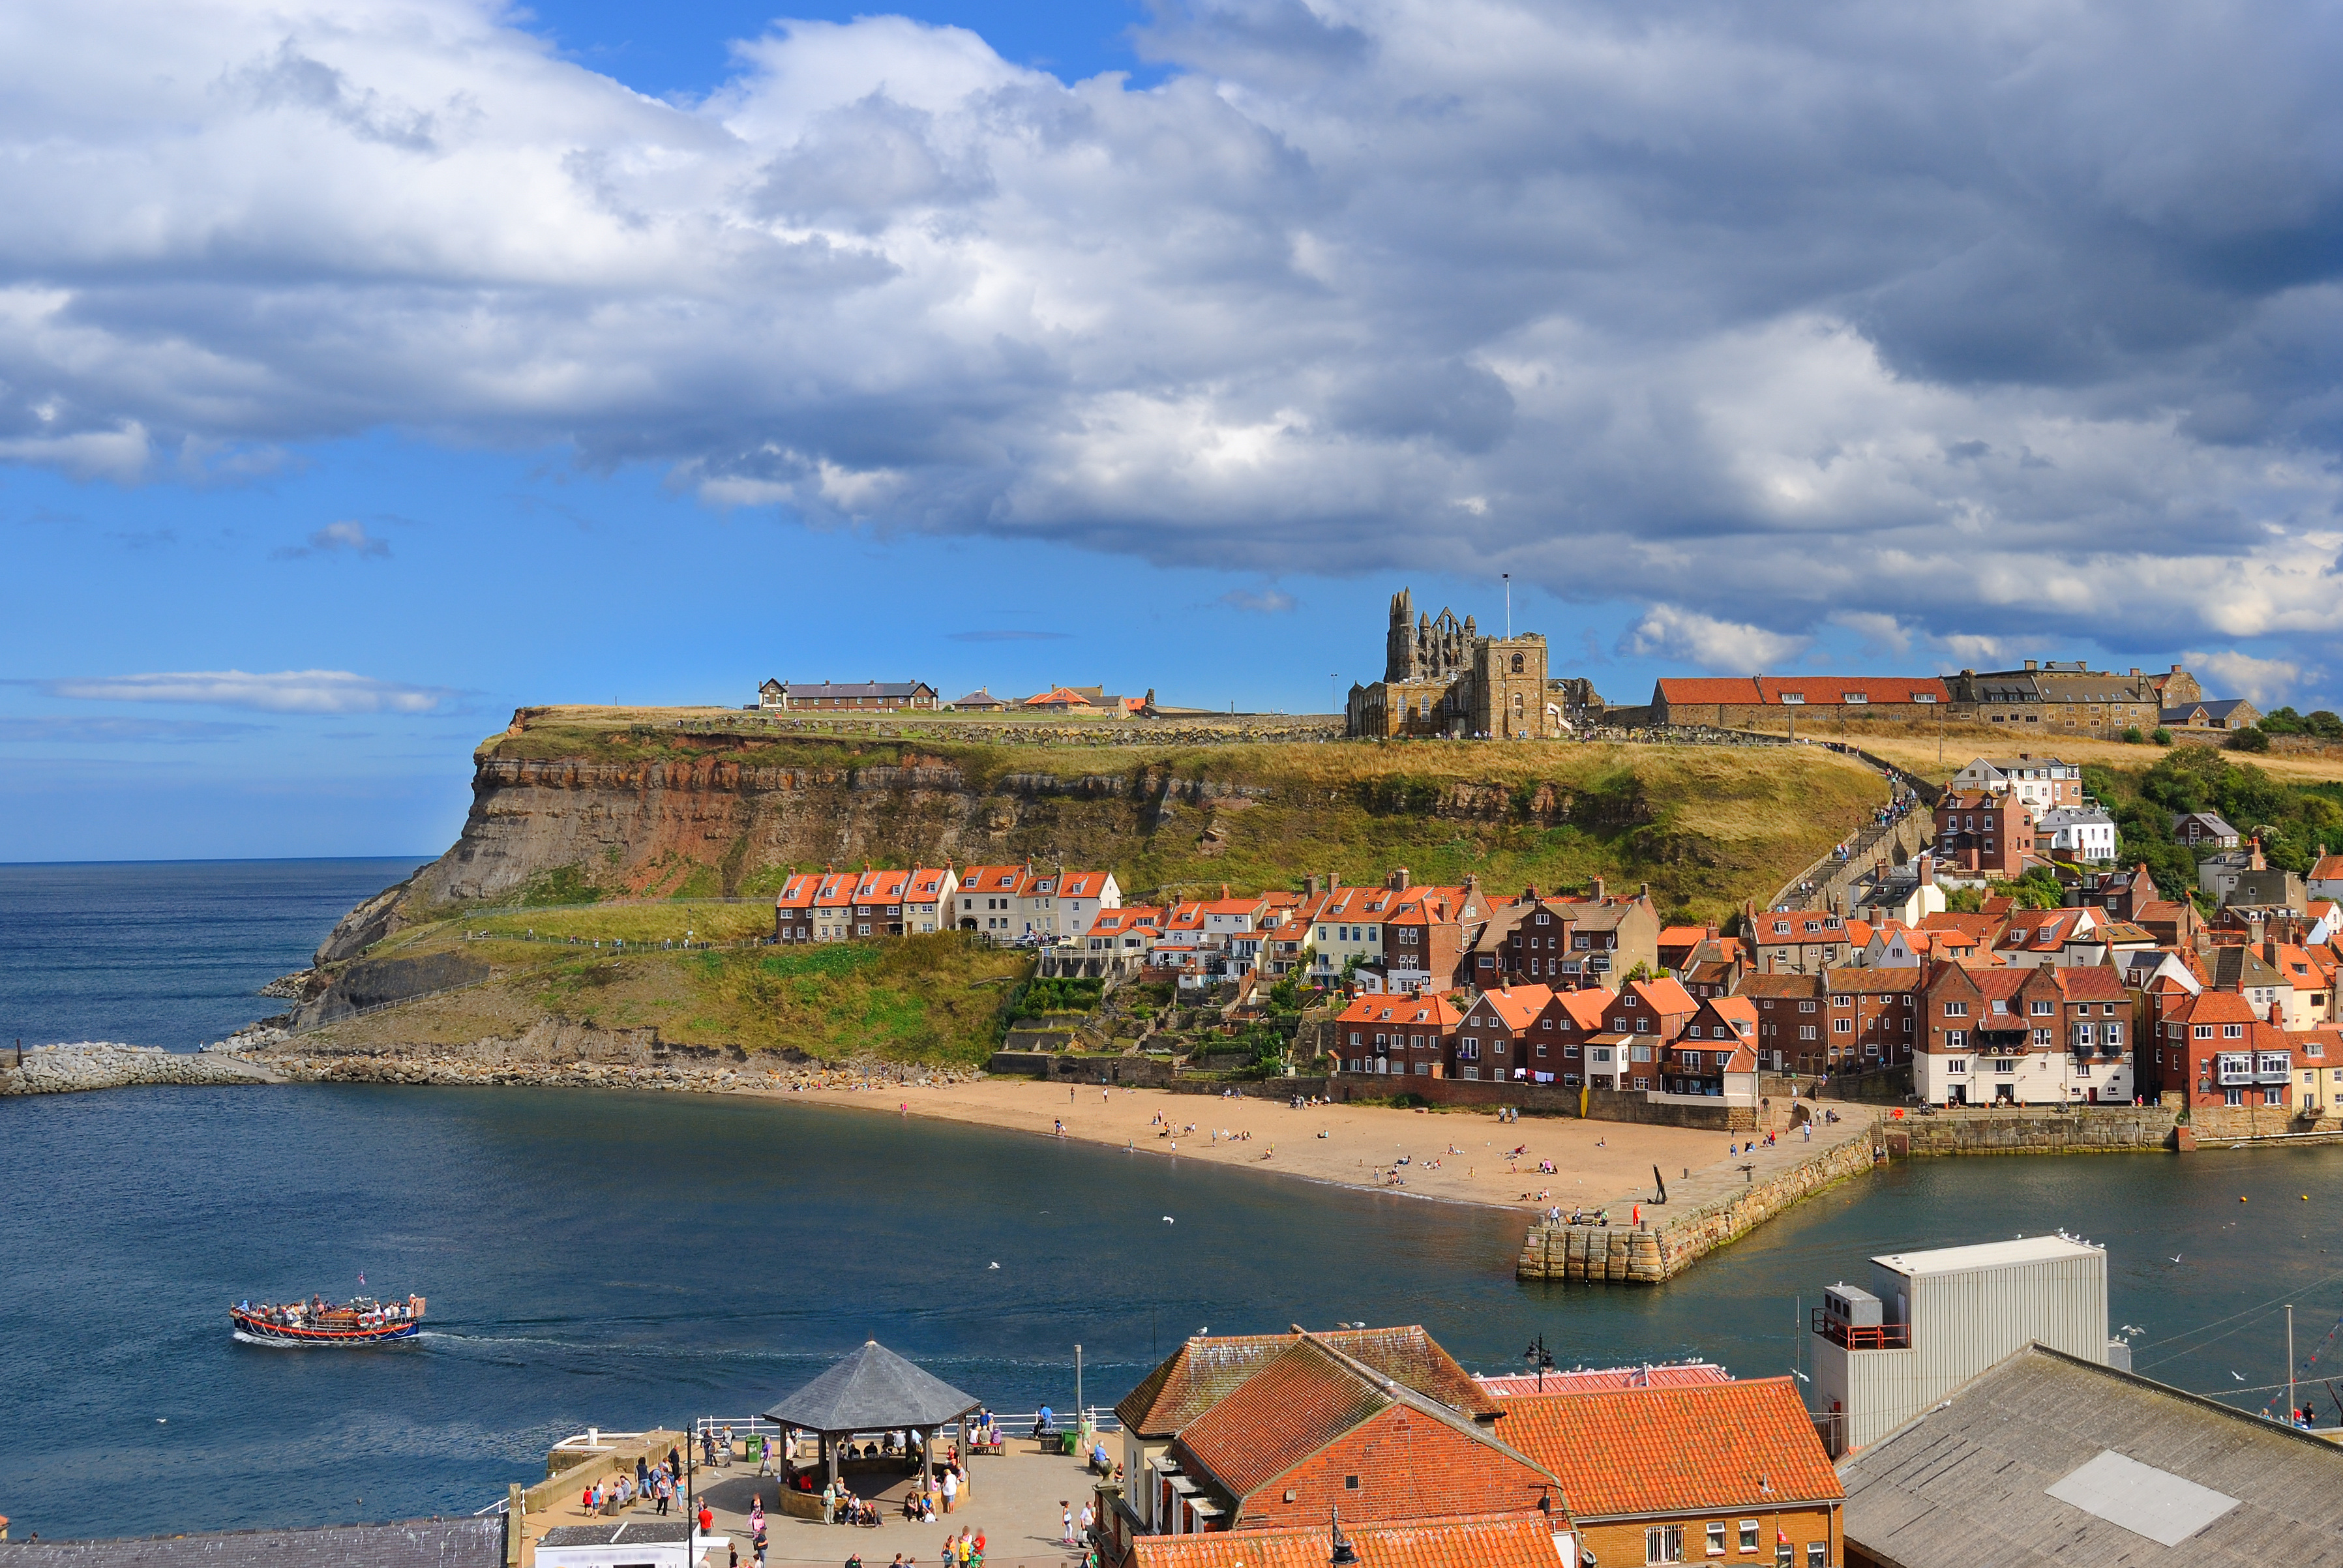 Visit Whitby During 2017 and Experience Some of Yorkshire Best Events